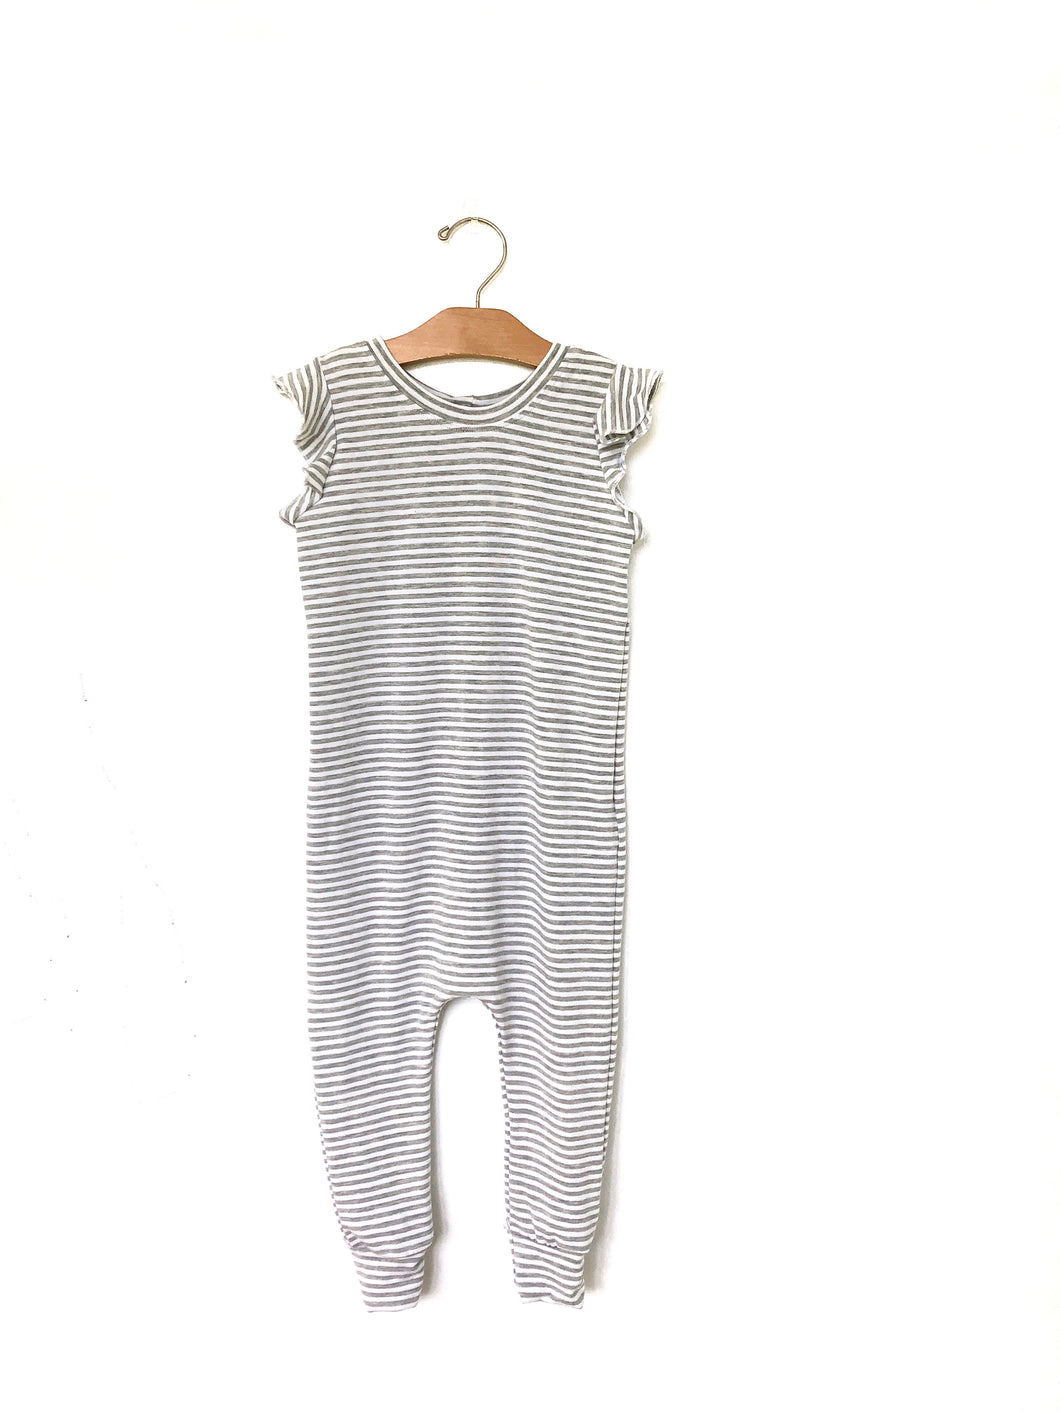 Coverall Romper - Grey Stripe Flutter